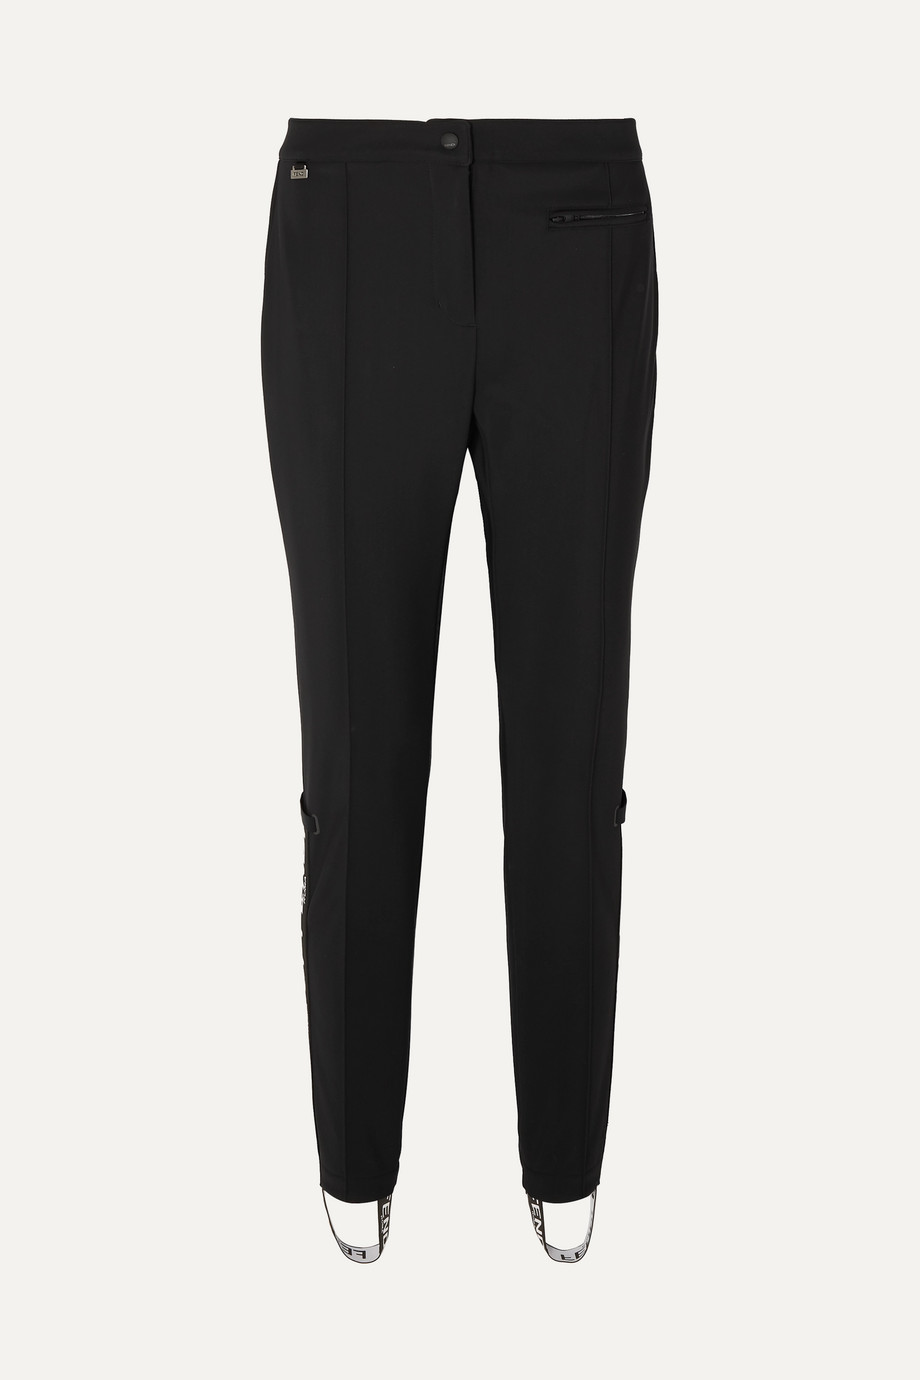 Fendi Roma jacquard-trimmed tapered stirrup ski pants